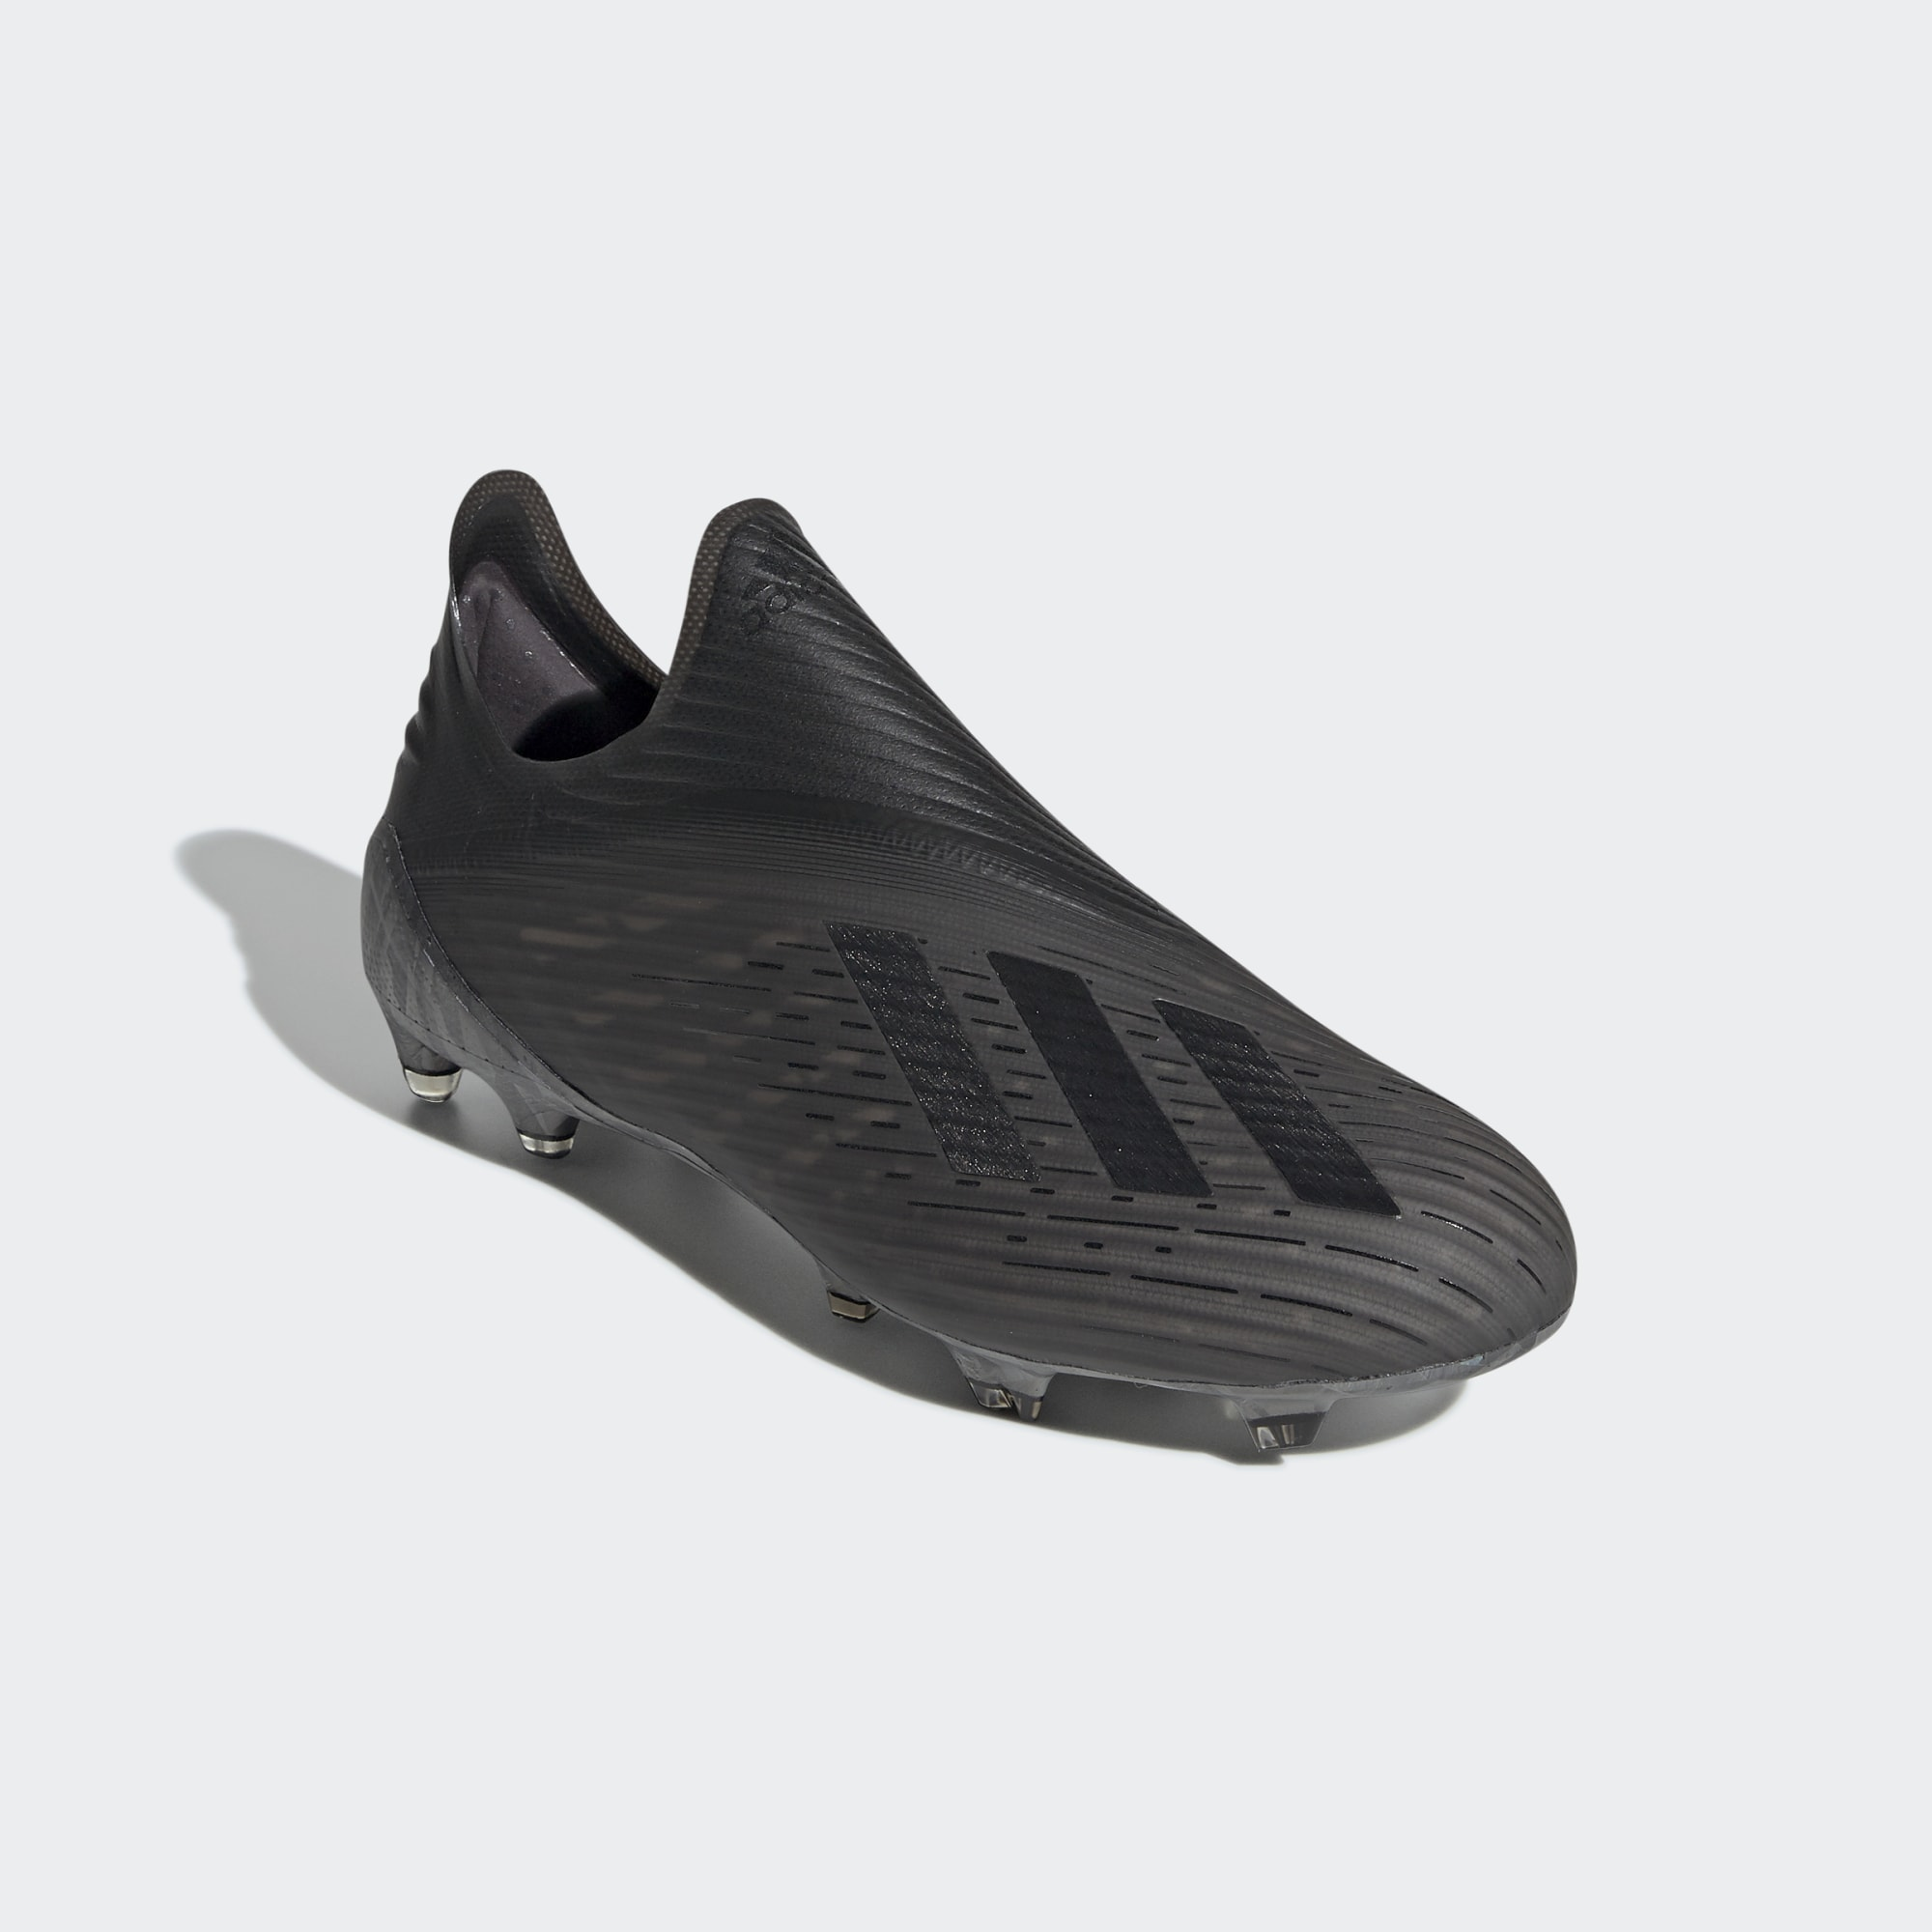 cd4fdf5bd ... Click to enlarge image  adidas_x_19_firm_ground_boots_core_black_utility_black_grey_four_3.jpg ...